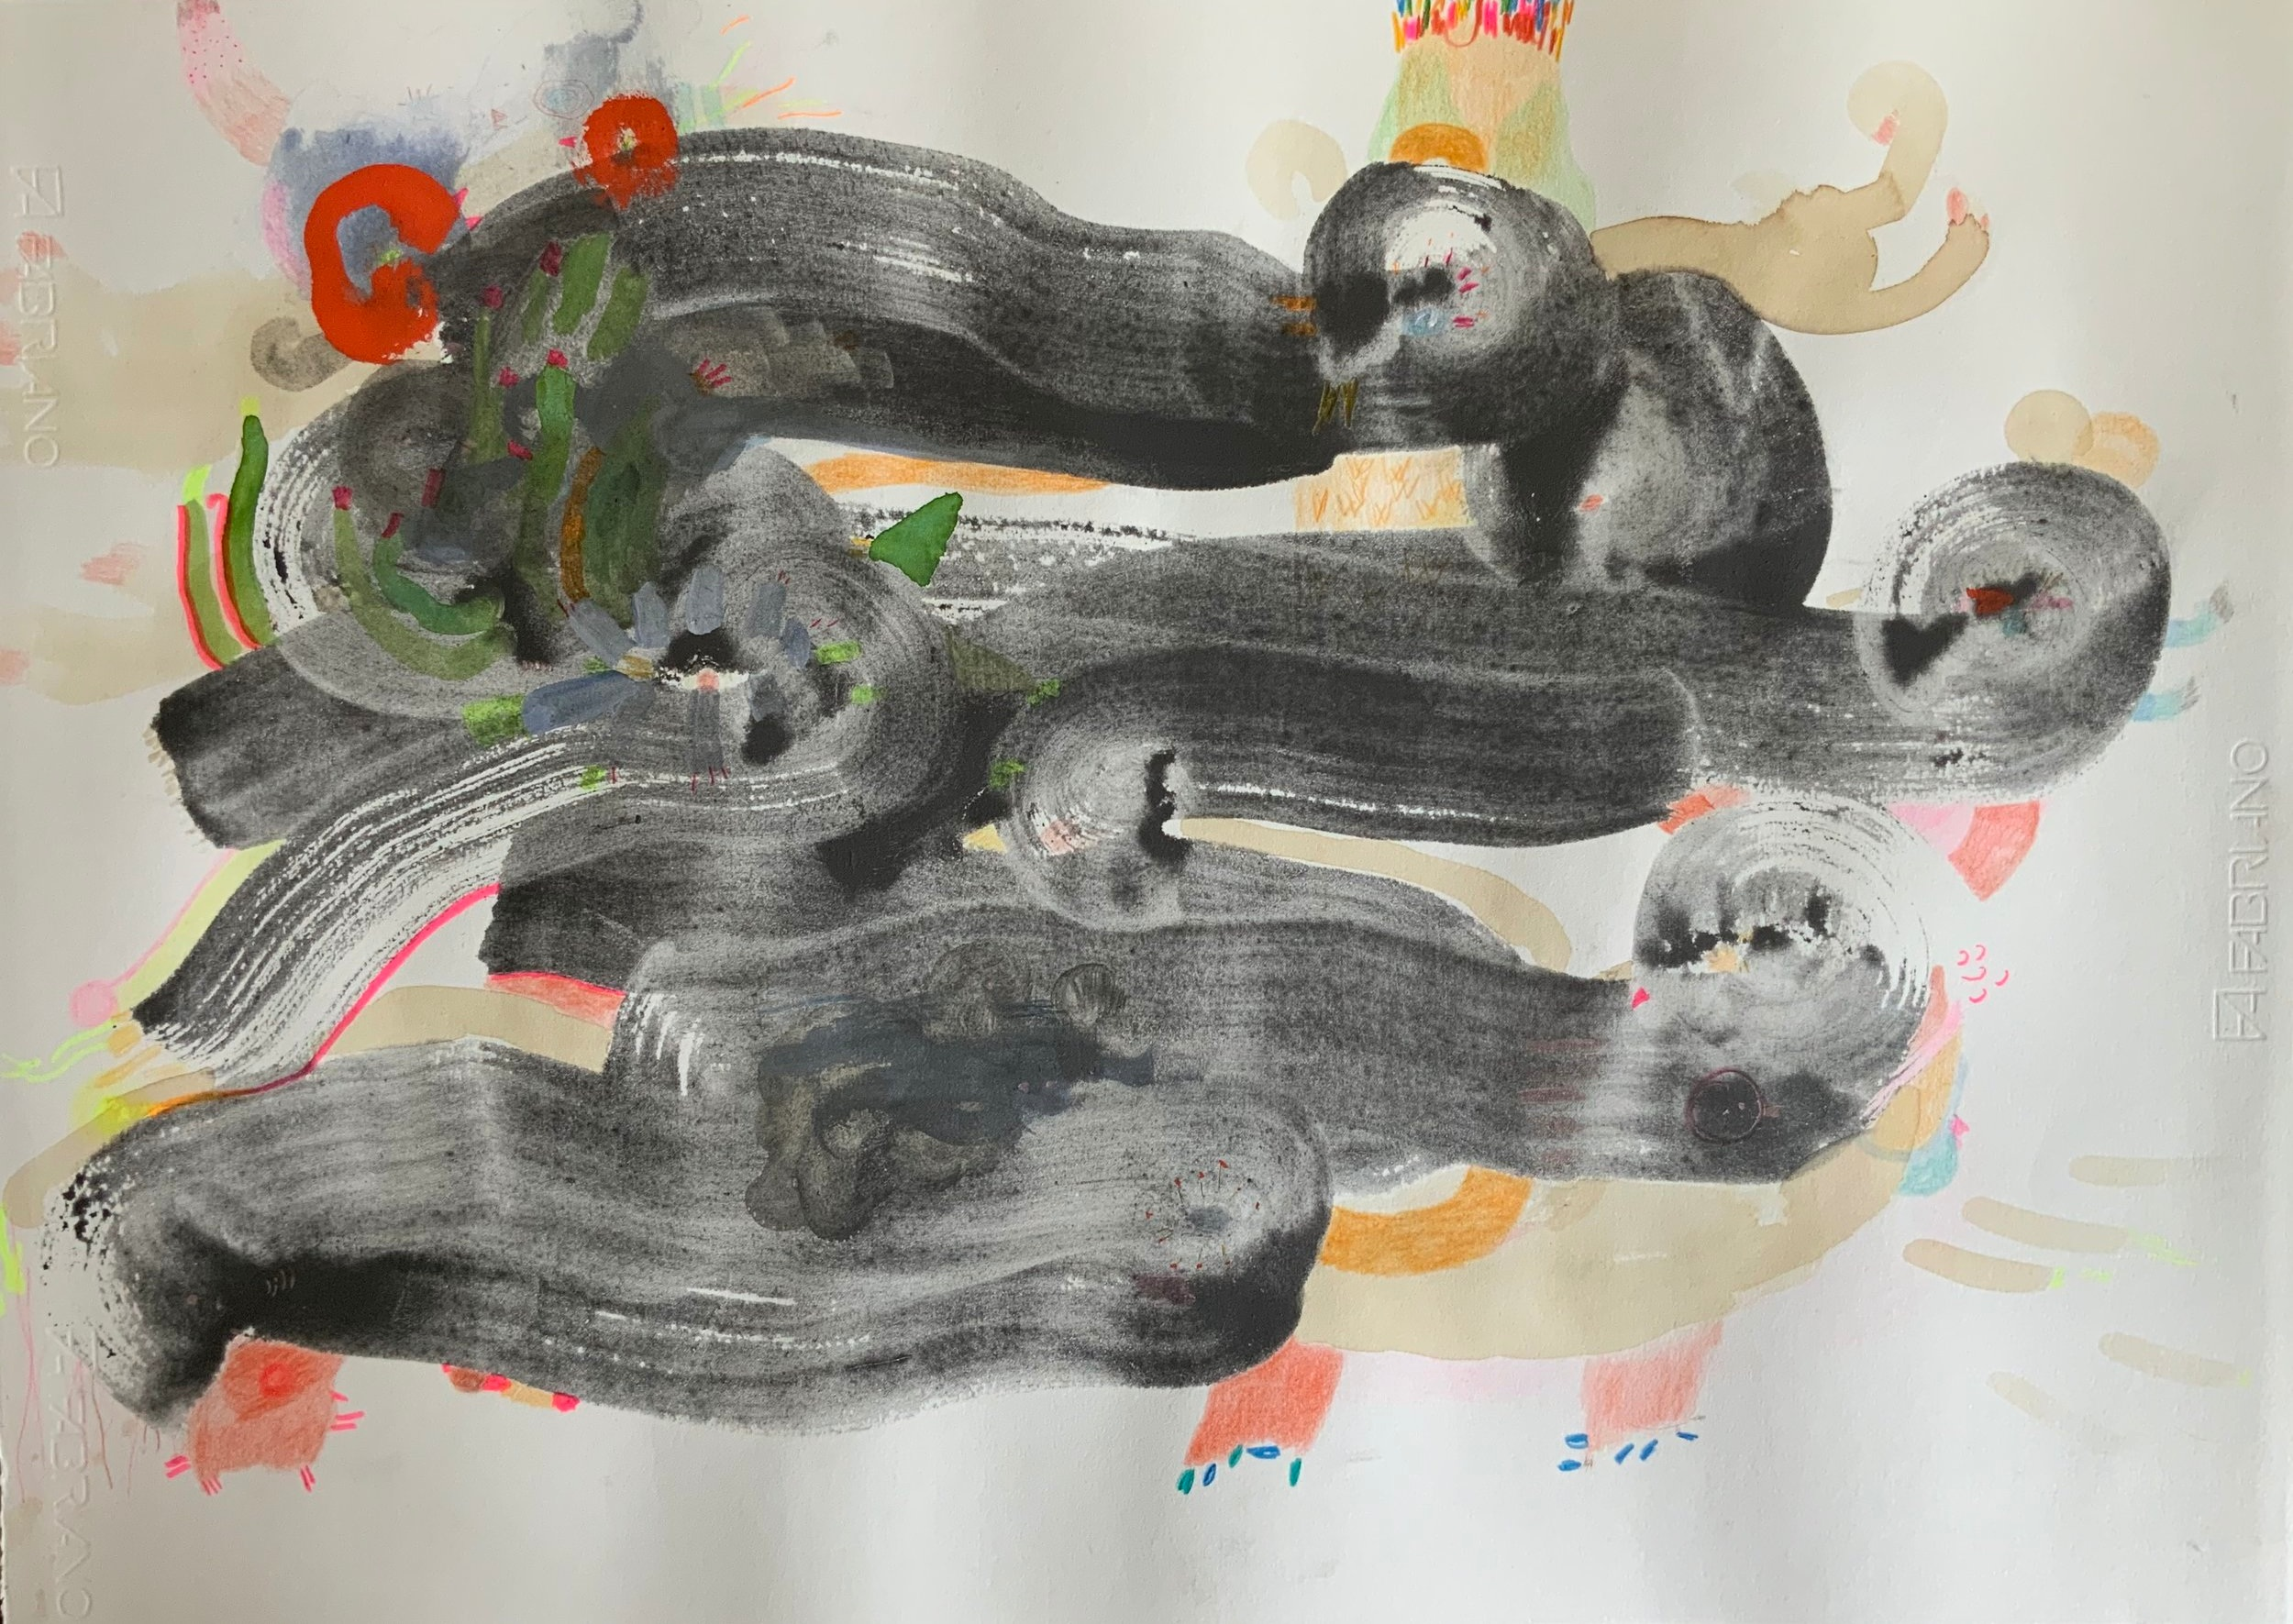 "Birds Carbon wash, crayon, pencil, graphite, and interference acrylic on cream rosapina 28 x 19.75 "" 2019"